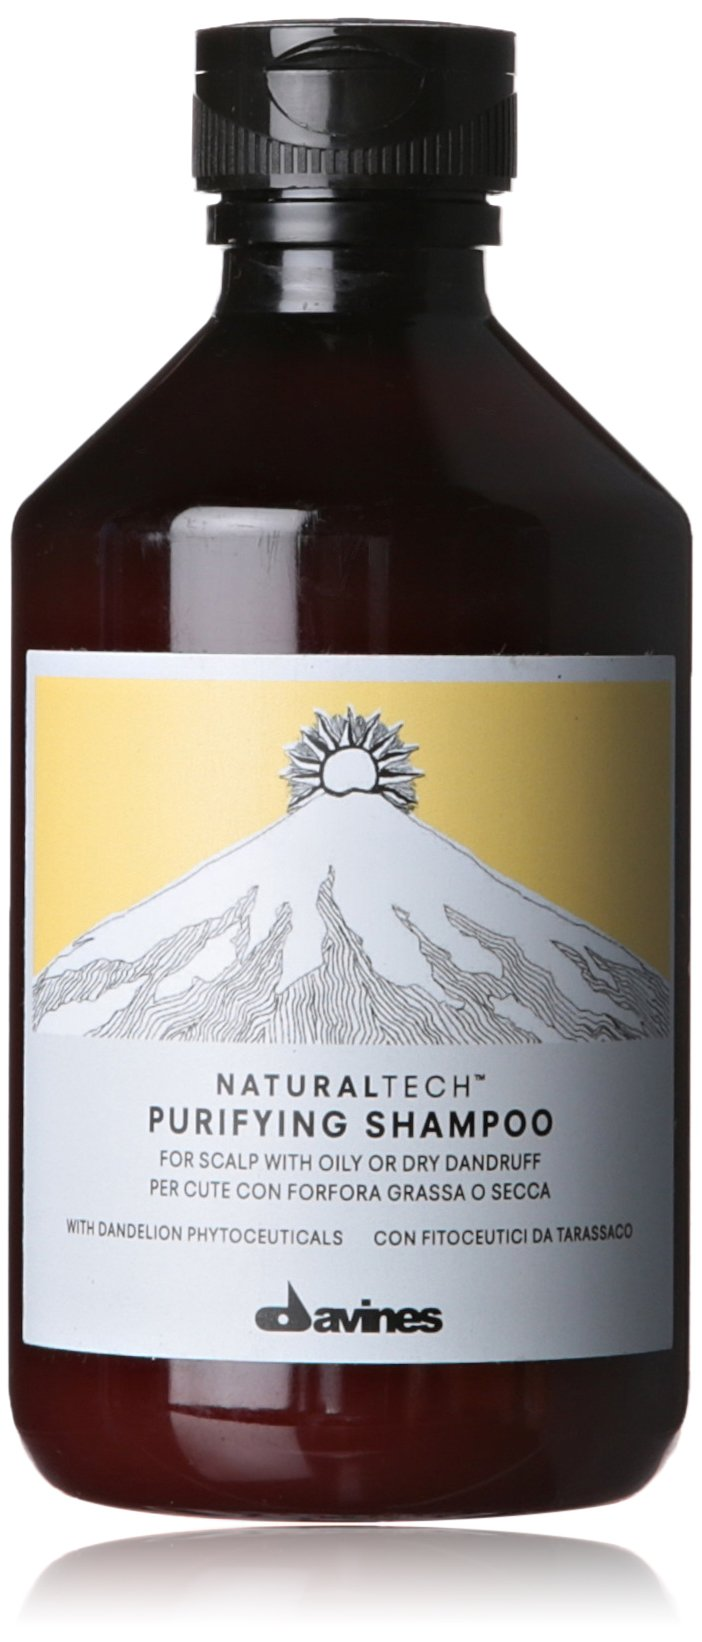 Davines Natural Tech Purifying Shampoo 250ml 8.45 oz